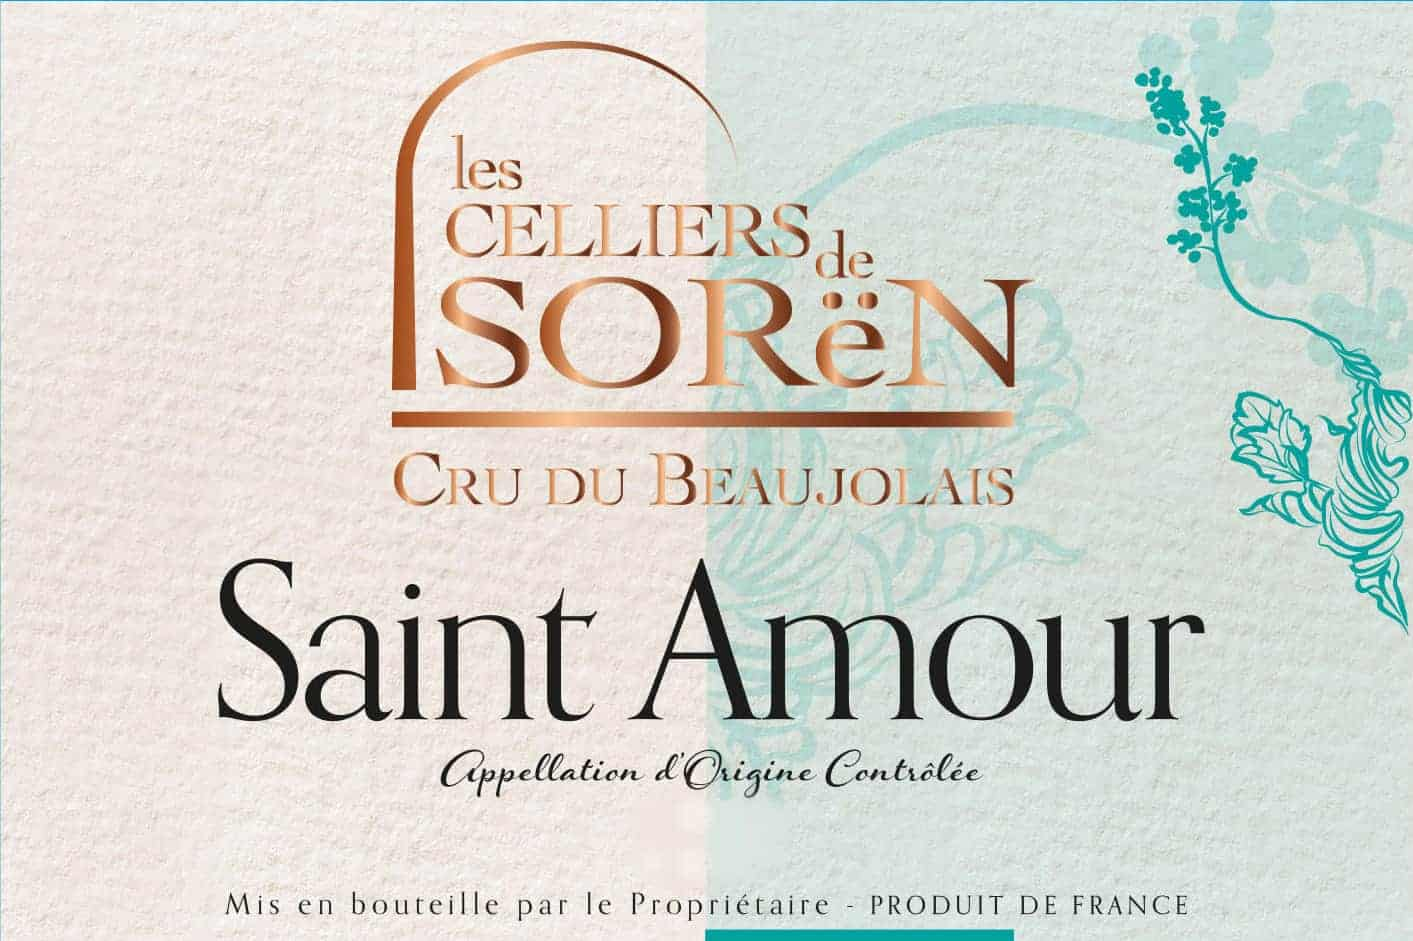 Label of Les Celliers de Sorën Saint Amour wine from Beaujolais